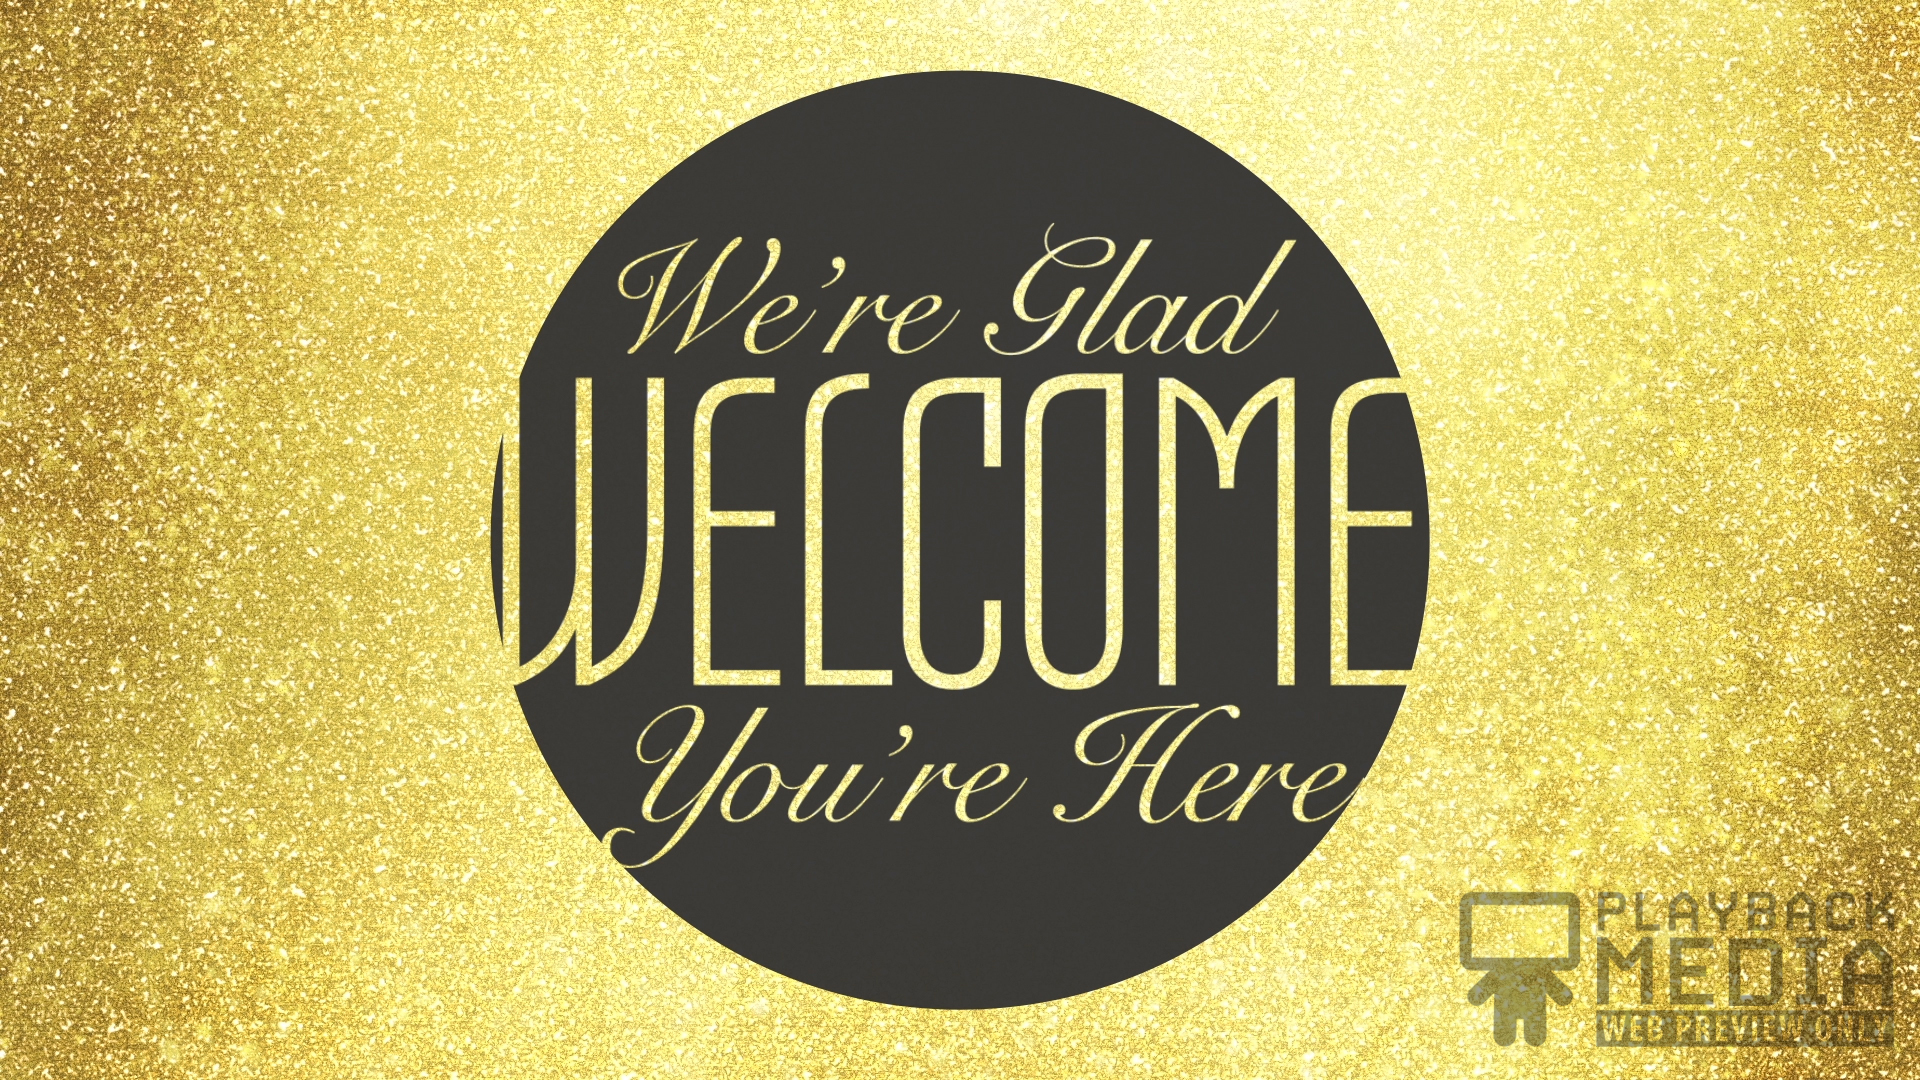 New Years Gold Welcome Motion Image